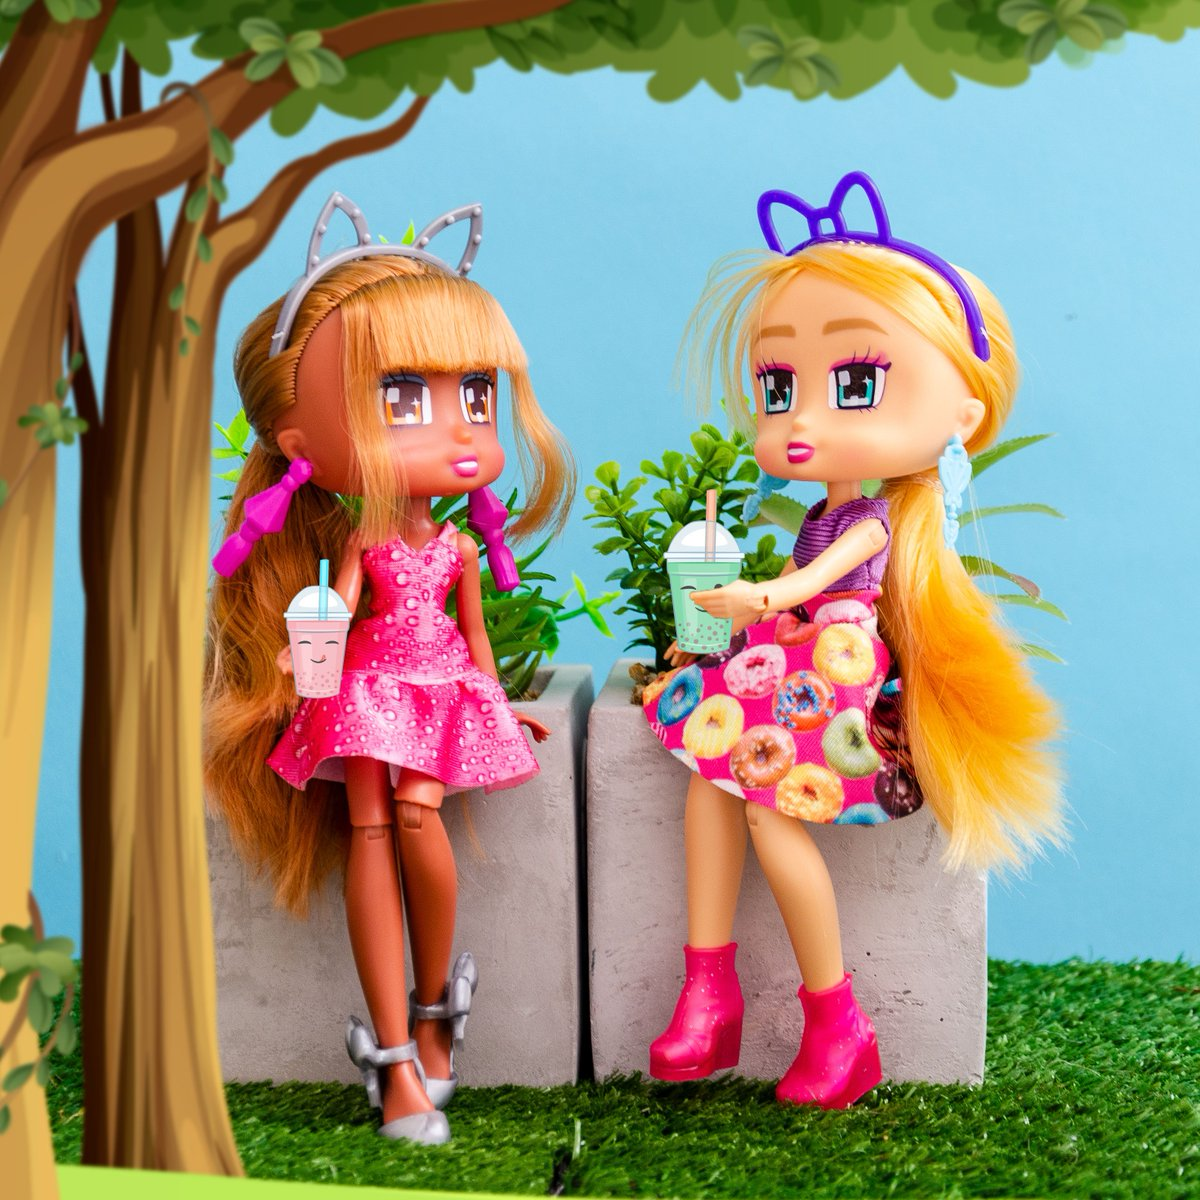 boxy girls dolls